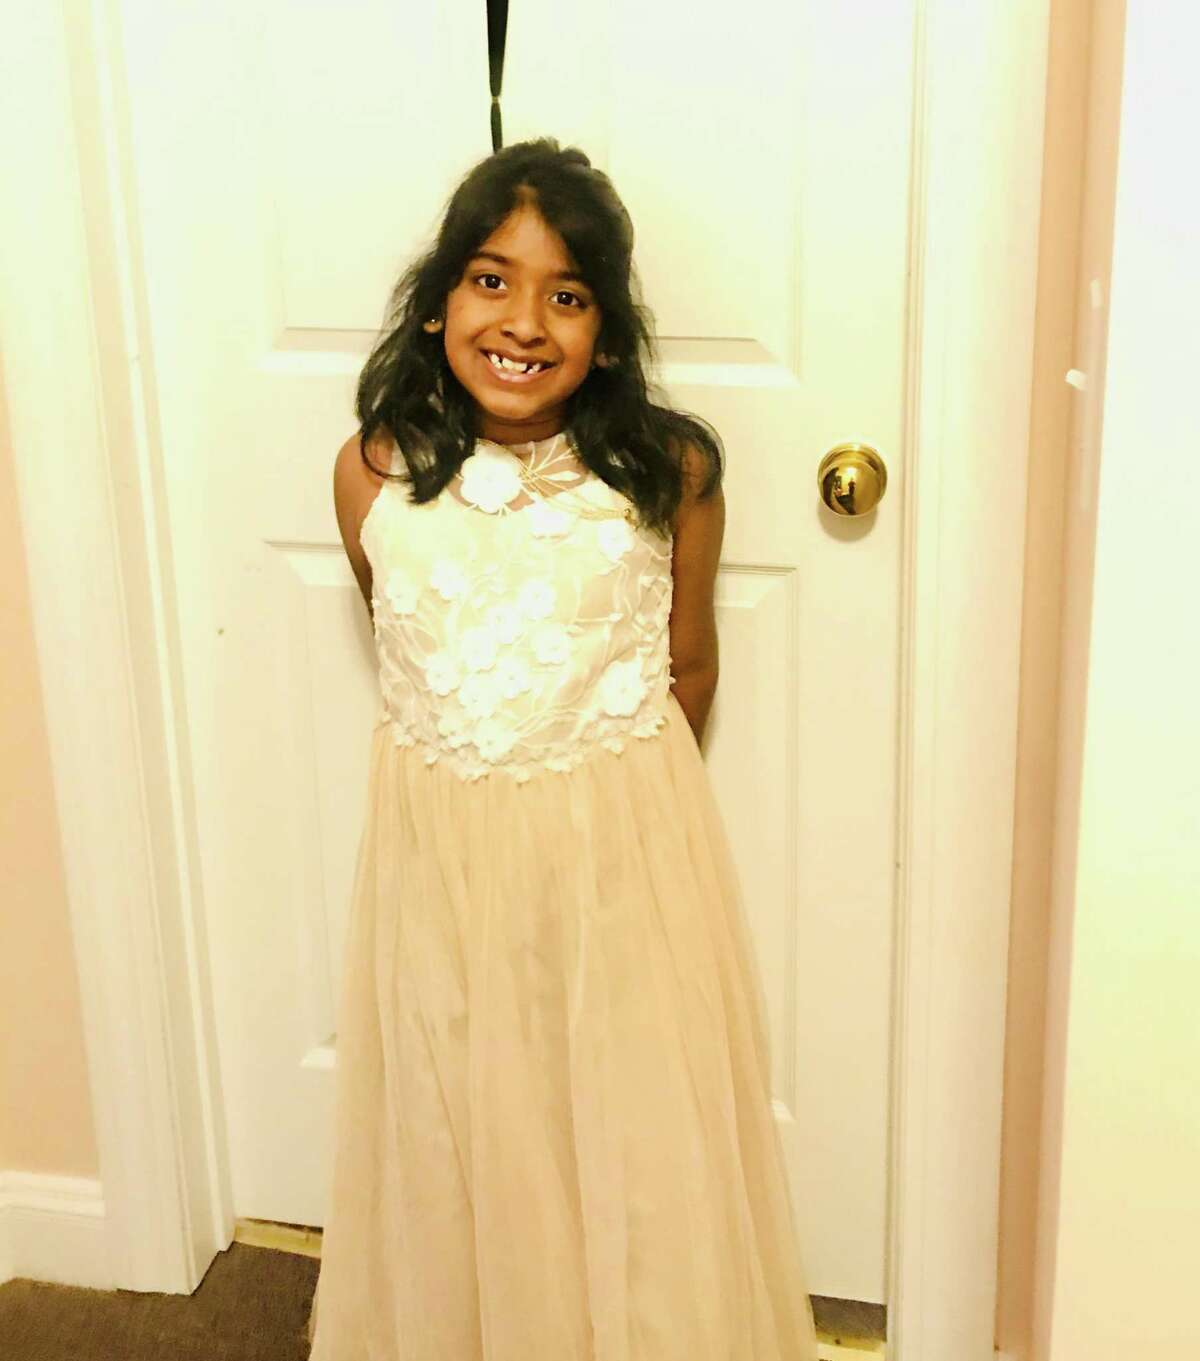 Second grader at Daniels Farm Elementary School, Selah Simon is the winner of the National Award of Excellence in the category of Literature for her story JUBODY.